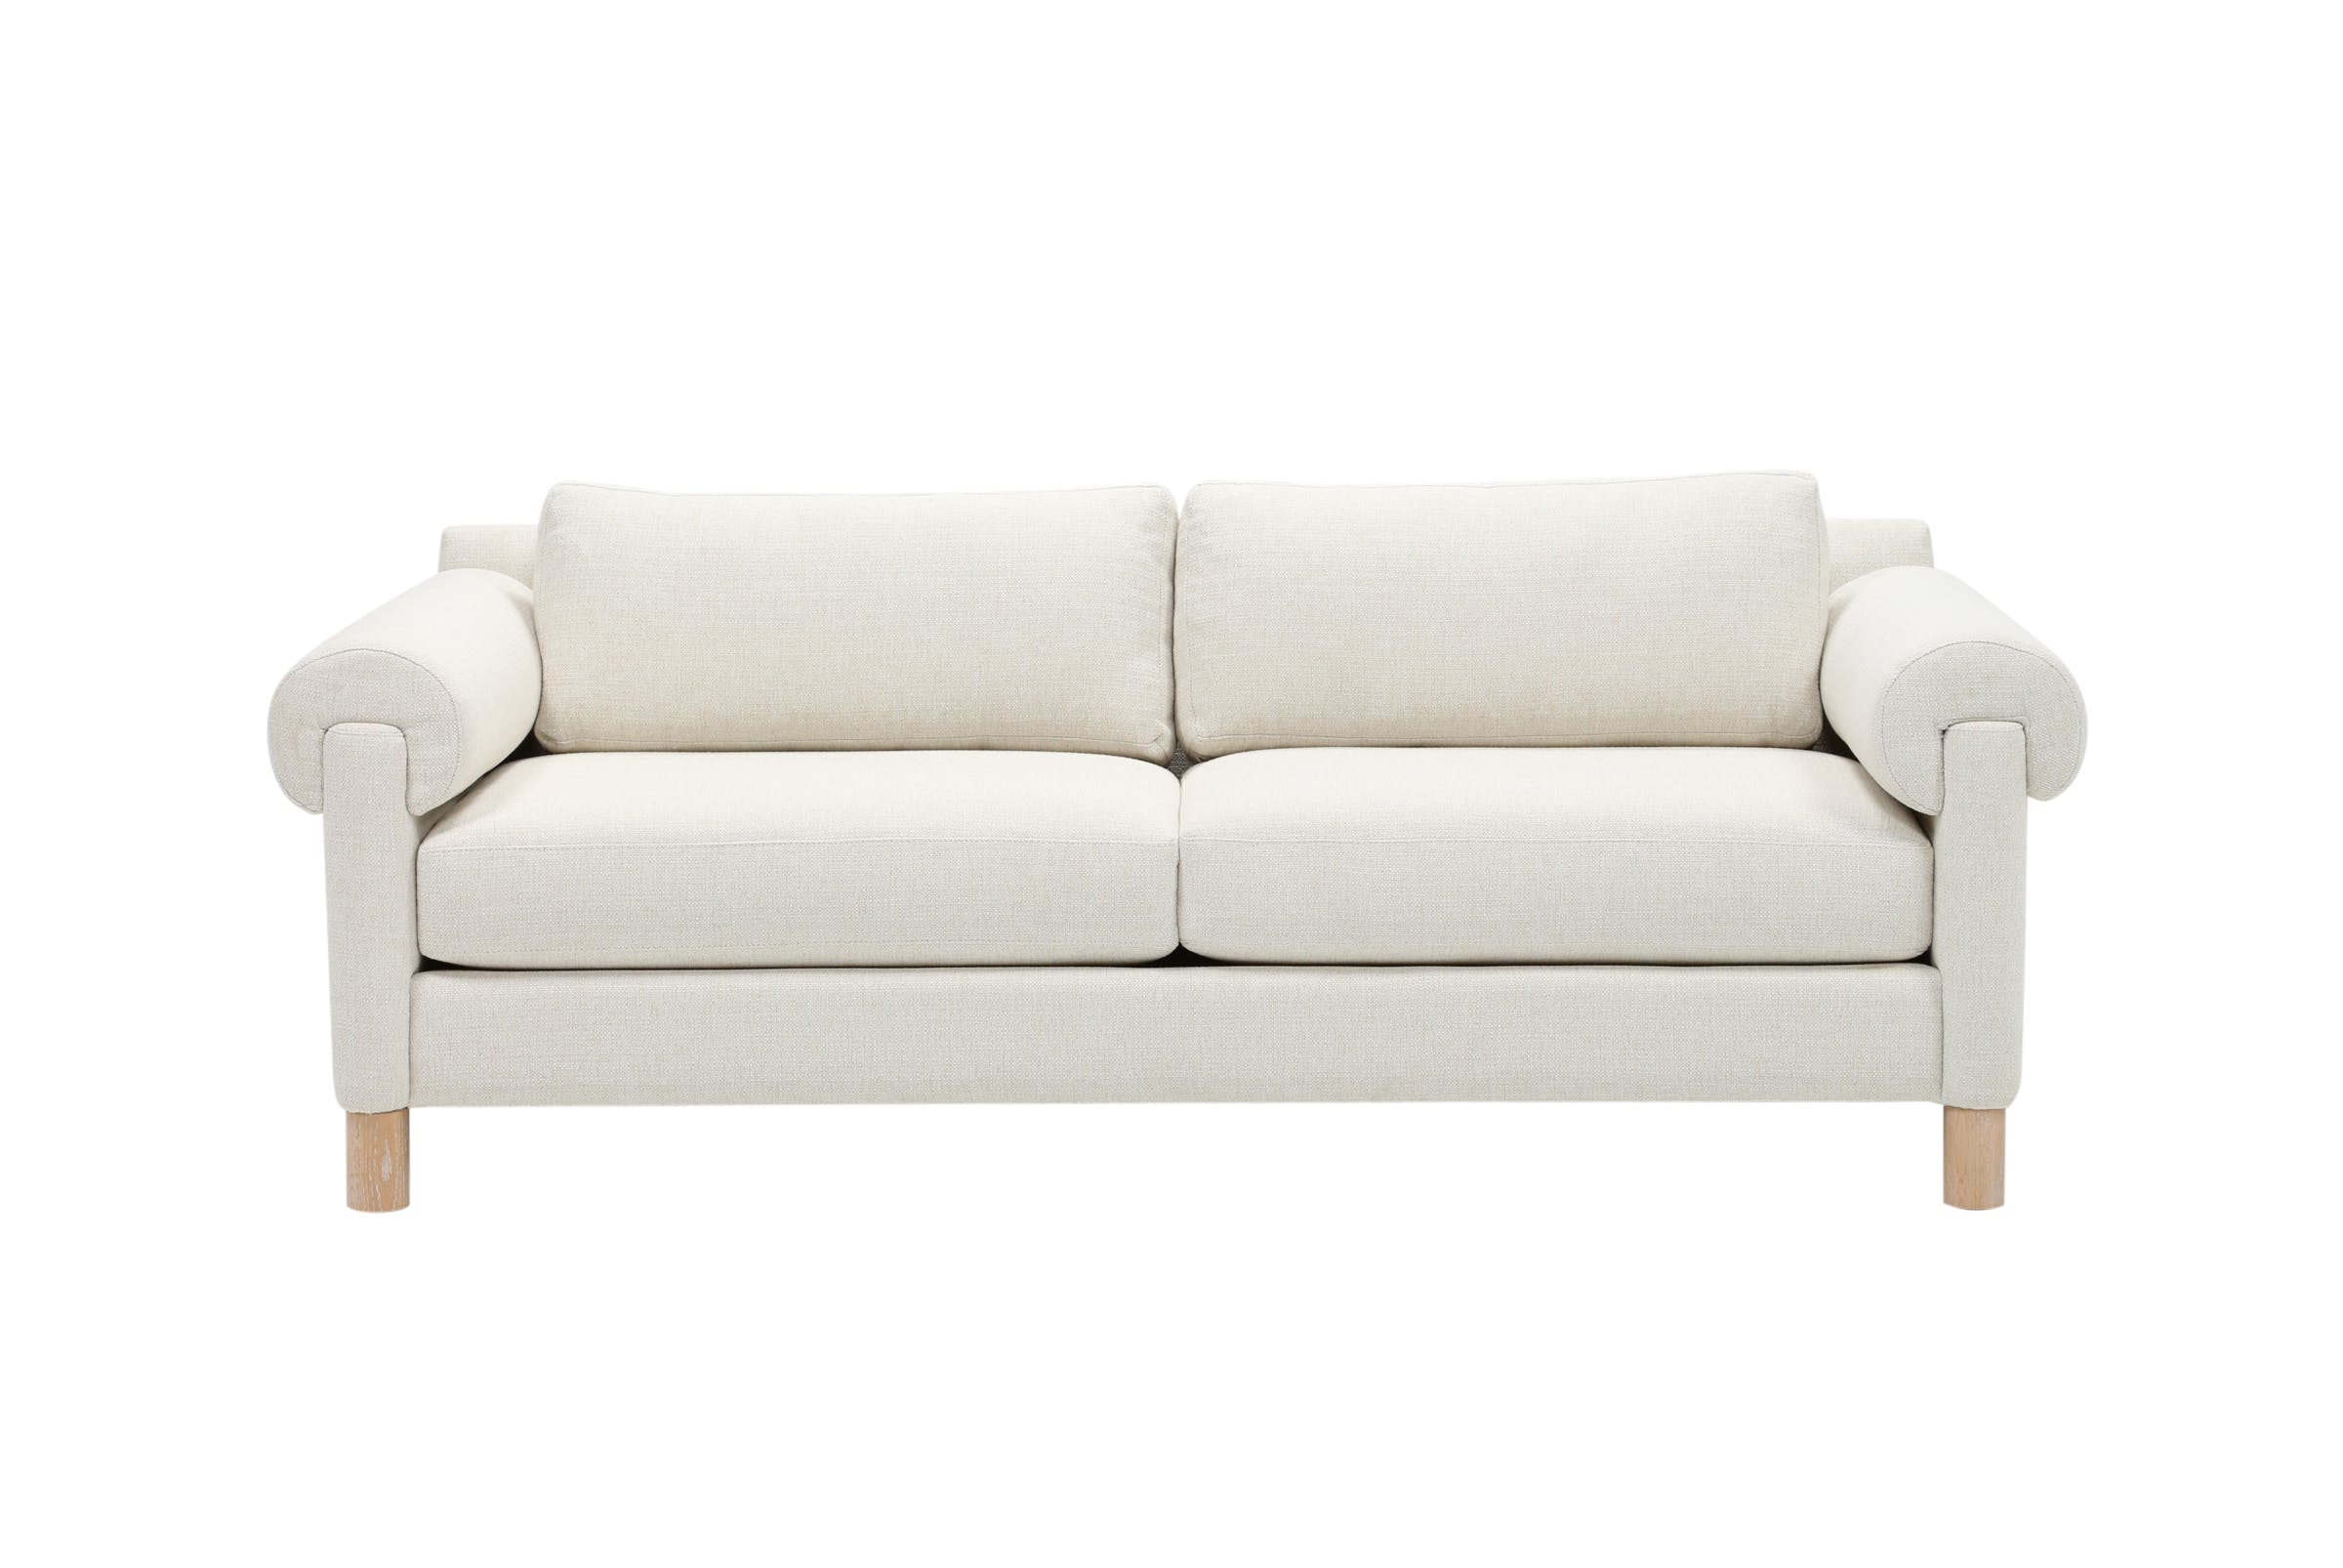 Liv Arm Sofa Chairs By Nate Berkus And Jeremiah Brent Within Preferred Nate Berkus Just Launched A Home Collection With Hubby Jeremiah (View 8 of 20)